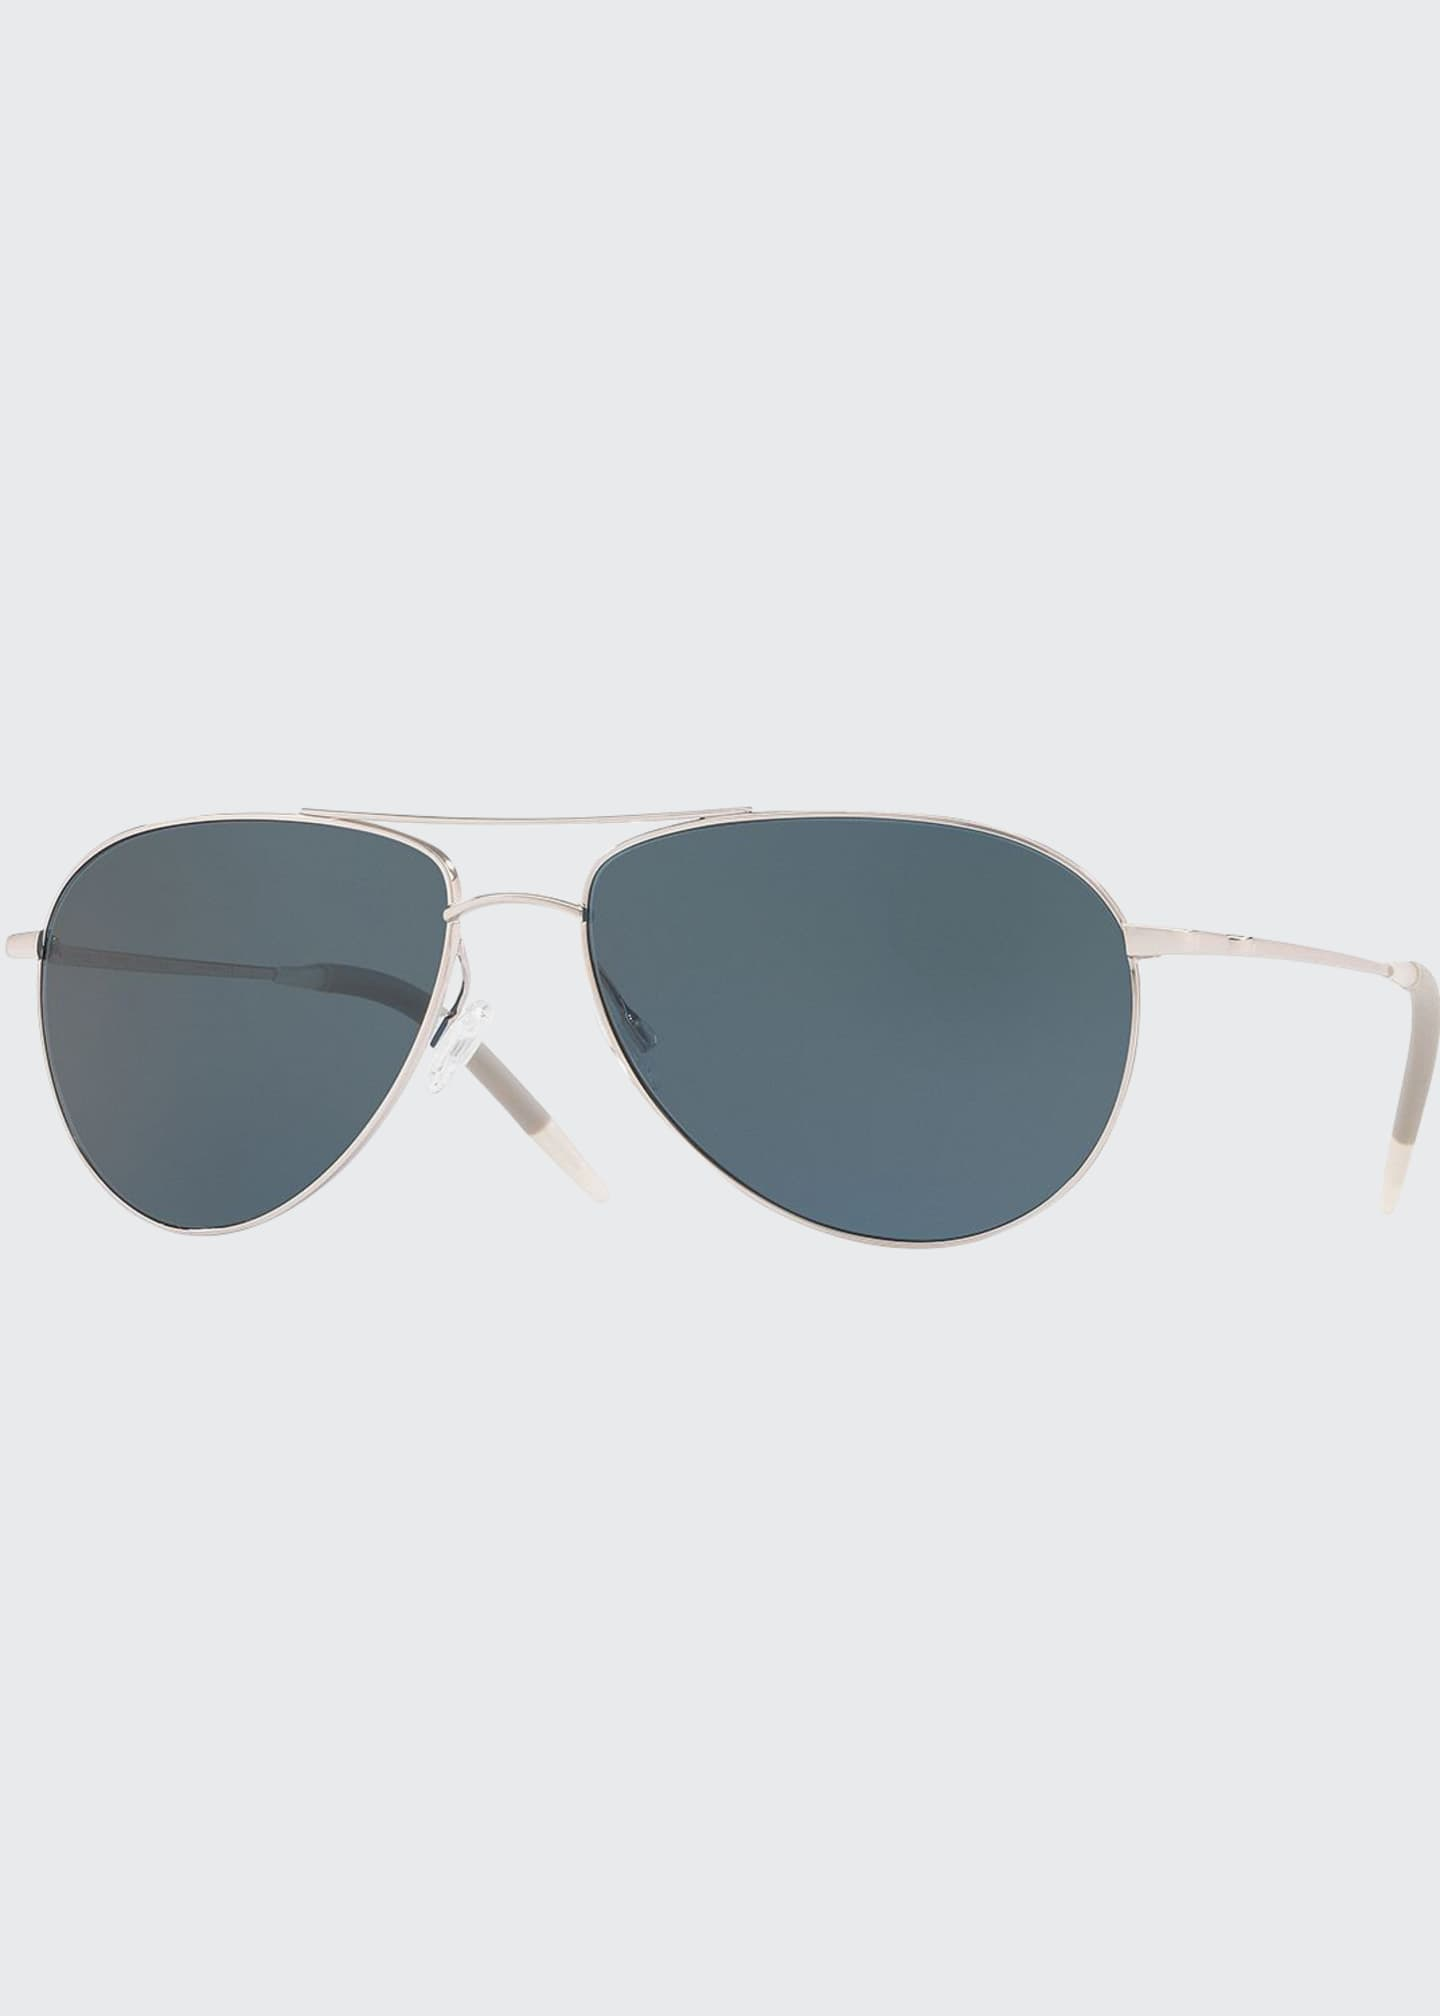 Image 1 of 2: Men's Benedict 59 Aviator Sunglasses - Polarized Lenses